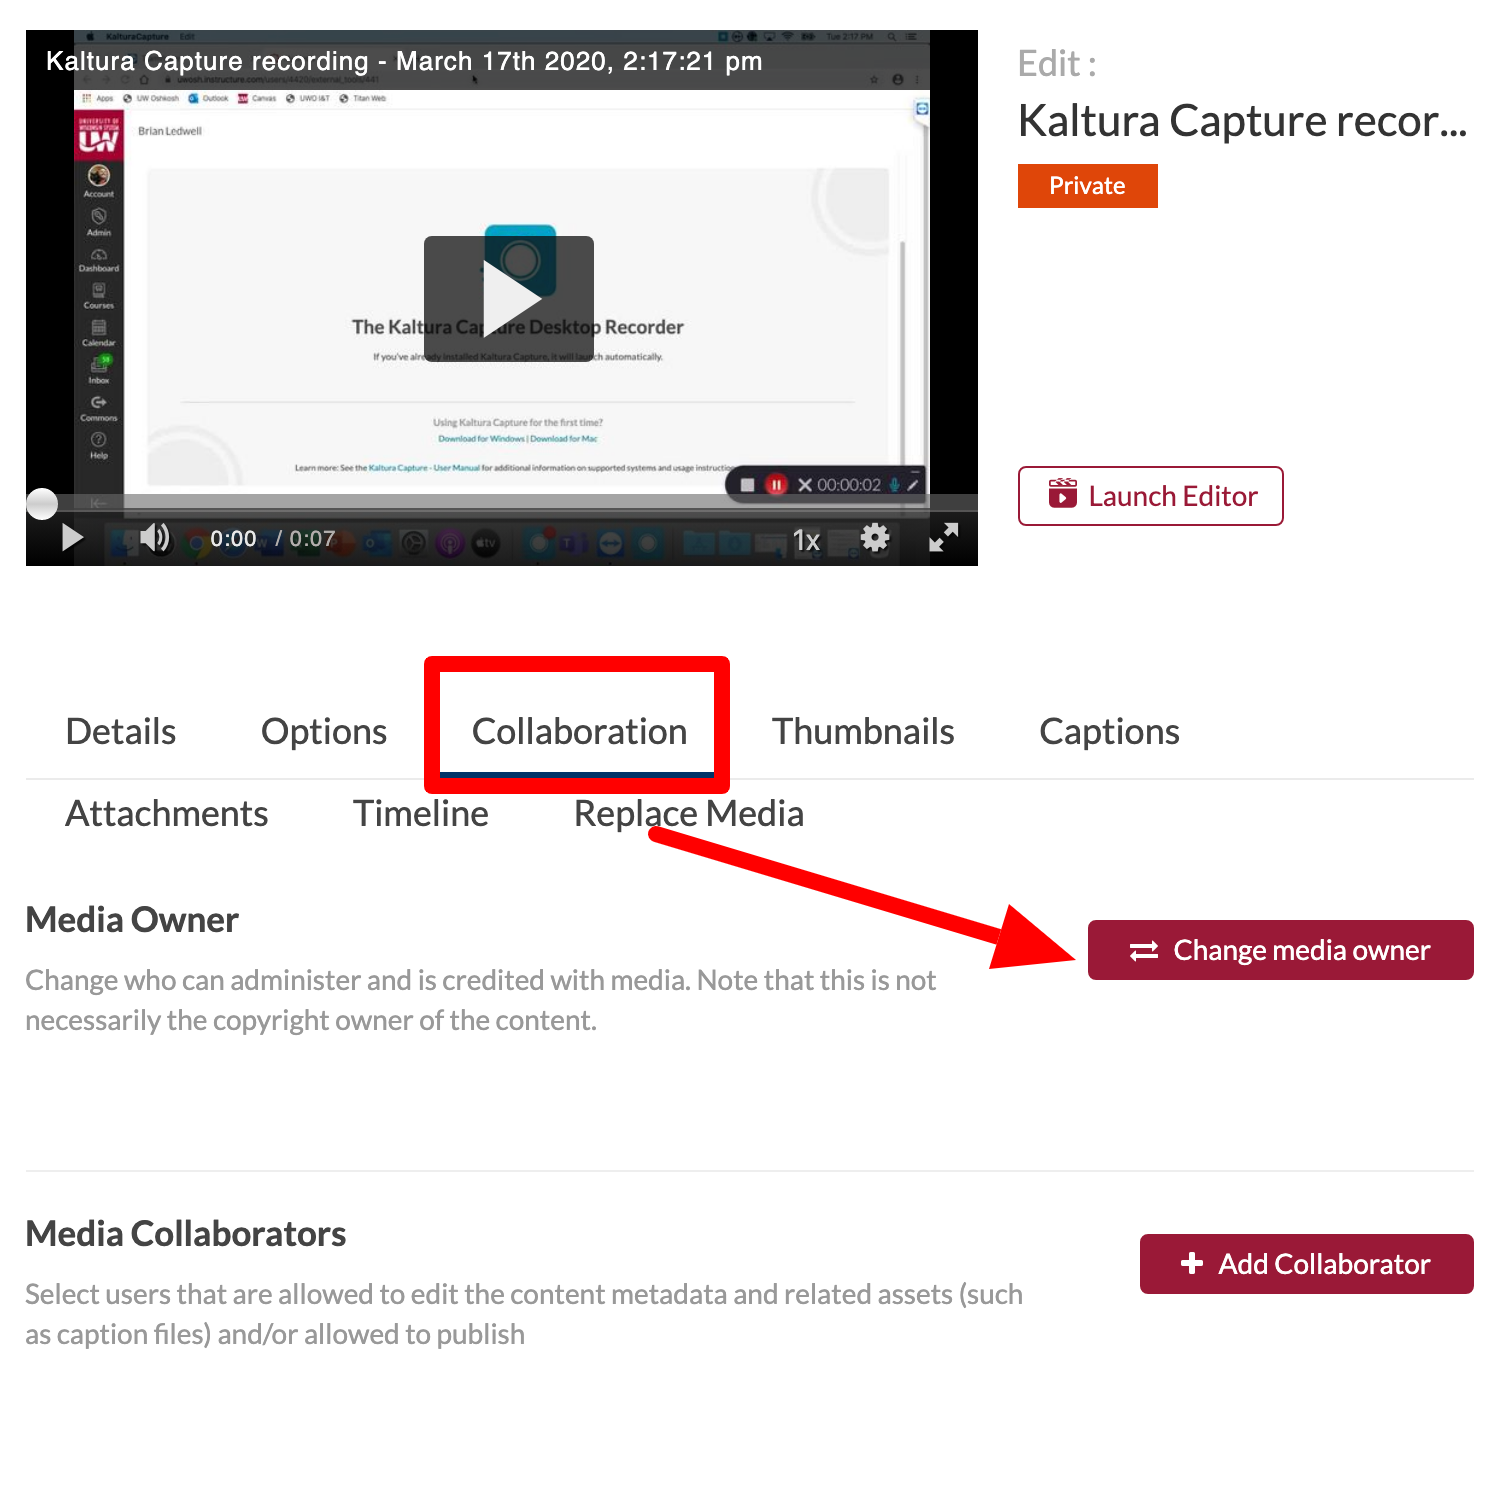 Change owner by choosing the Change media owner button